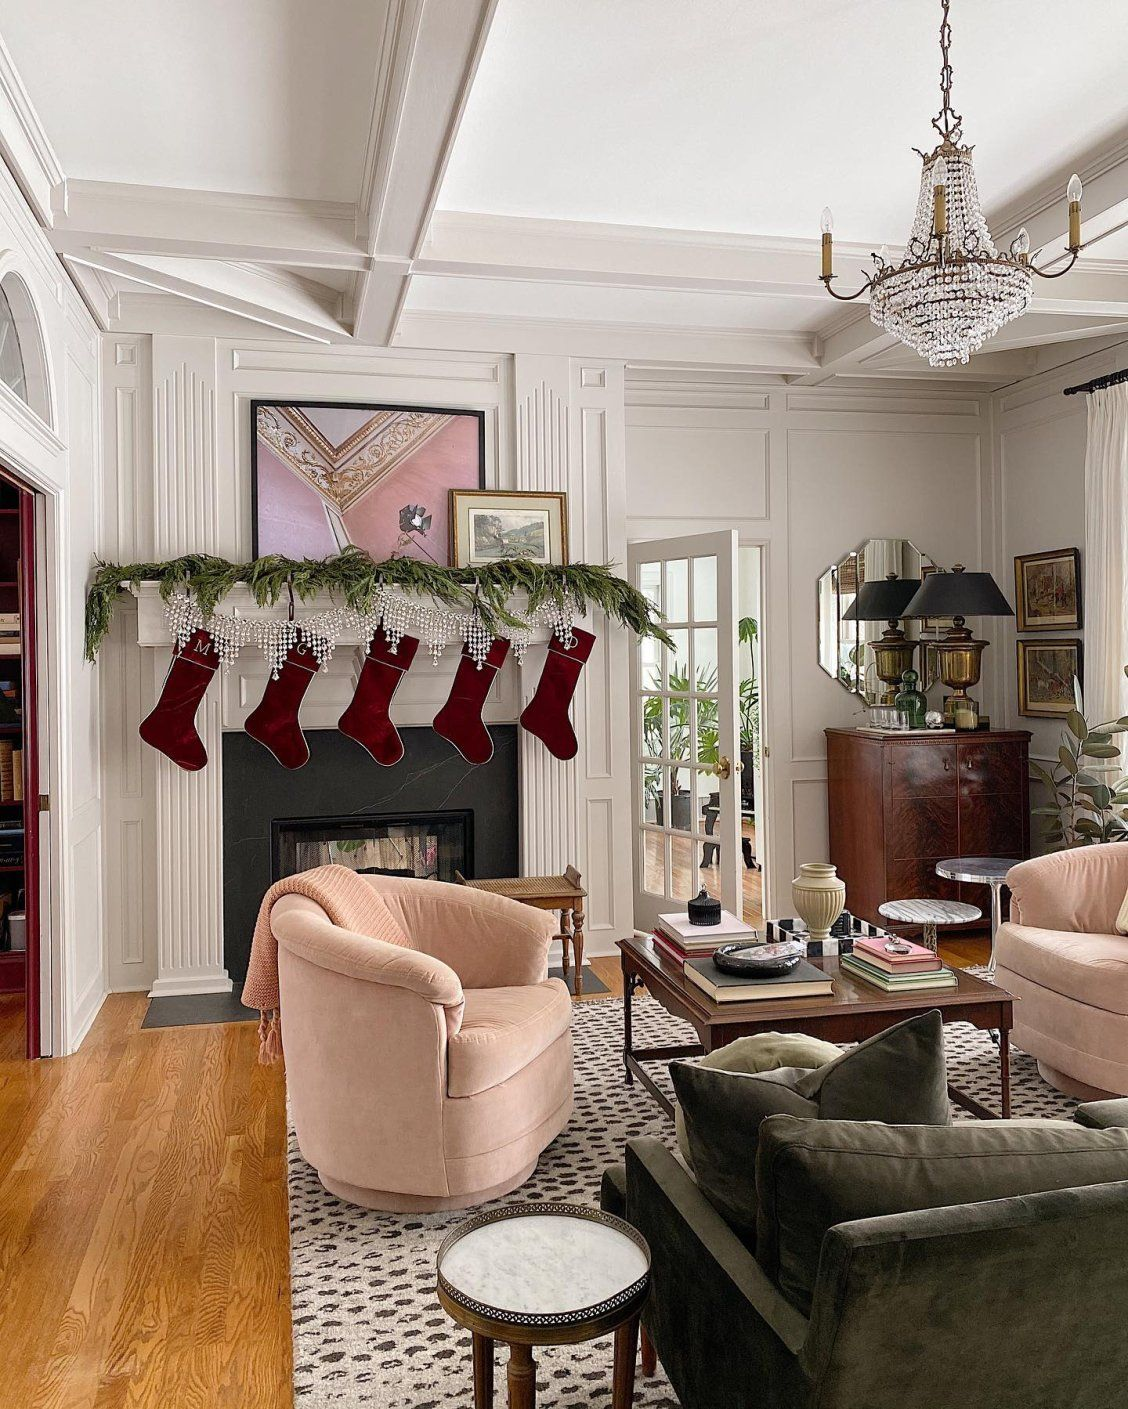 luxury velvet stocking with gold trim christmas on exclusive modern nesting end tables design ideas very functional furnishings id=79945